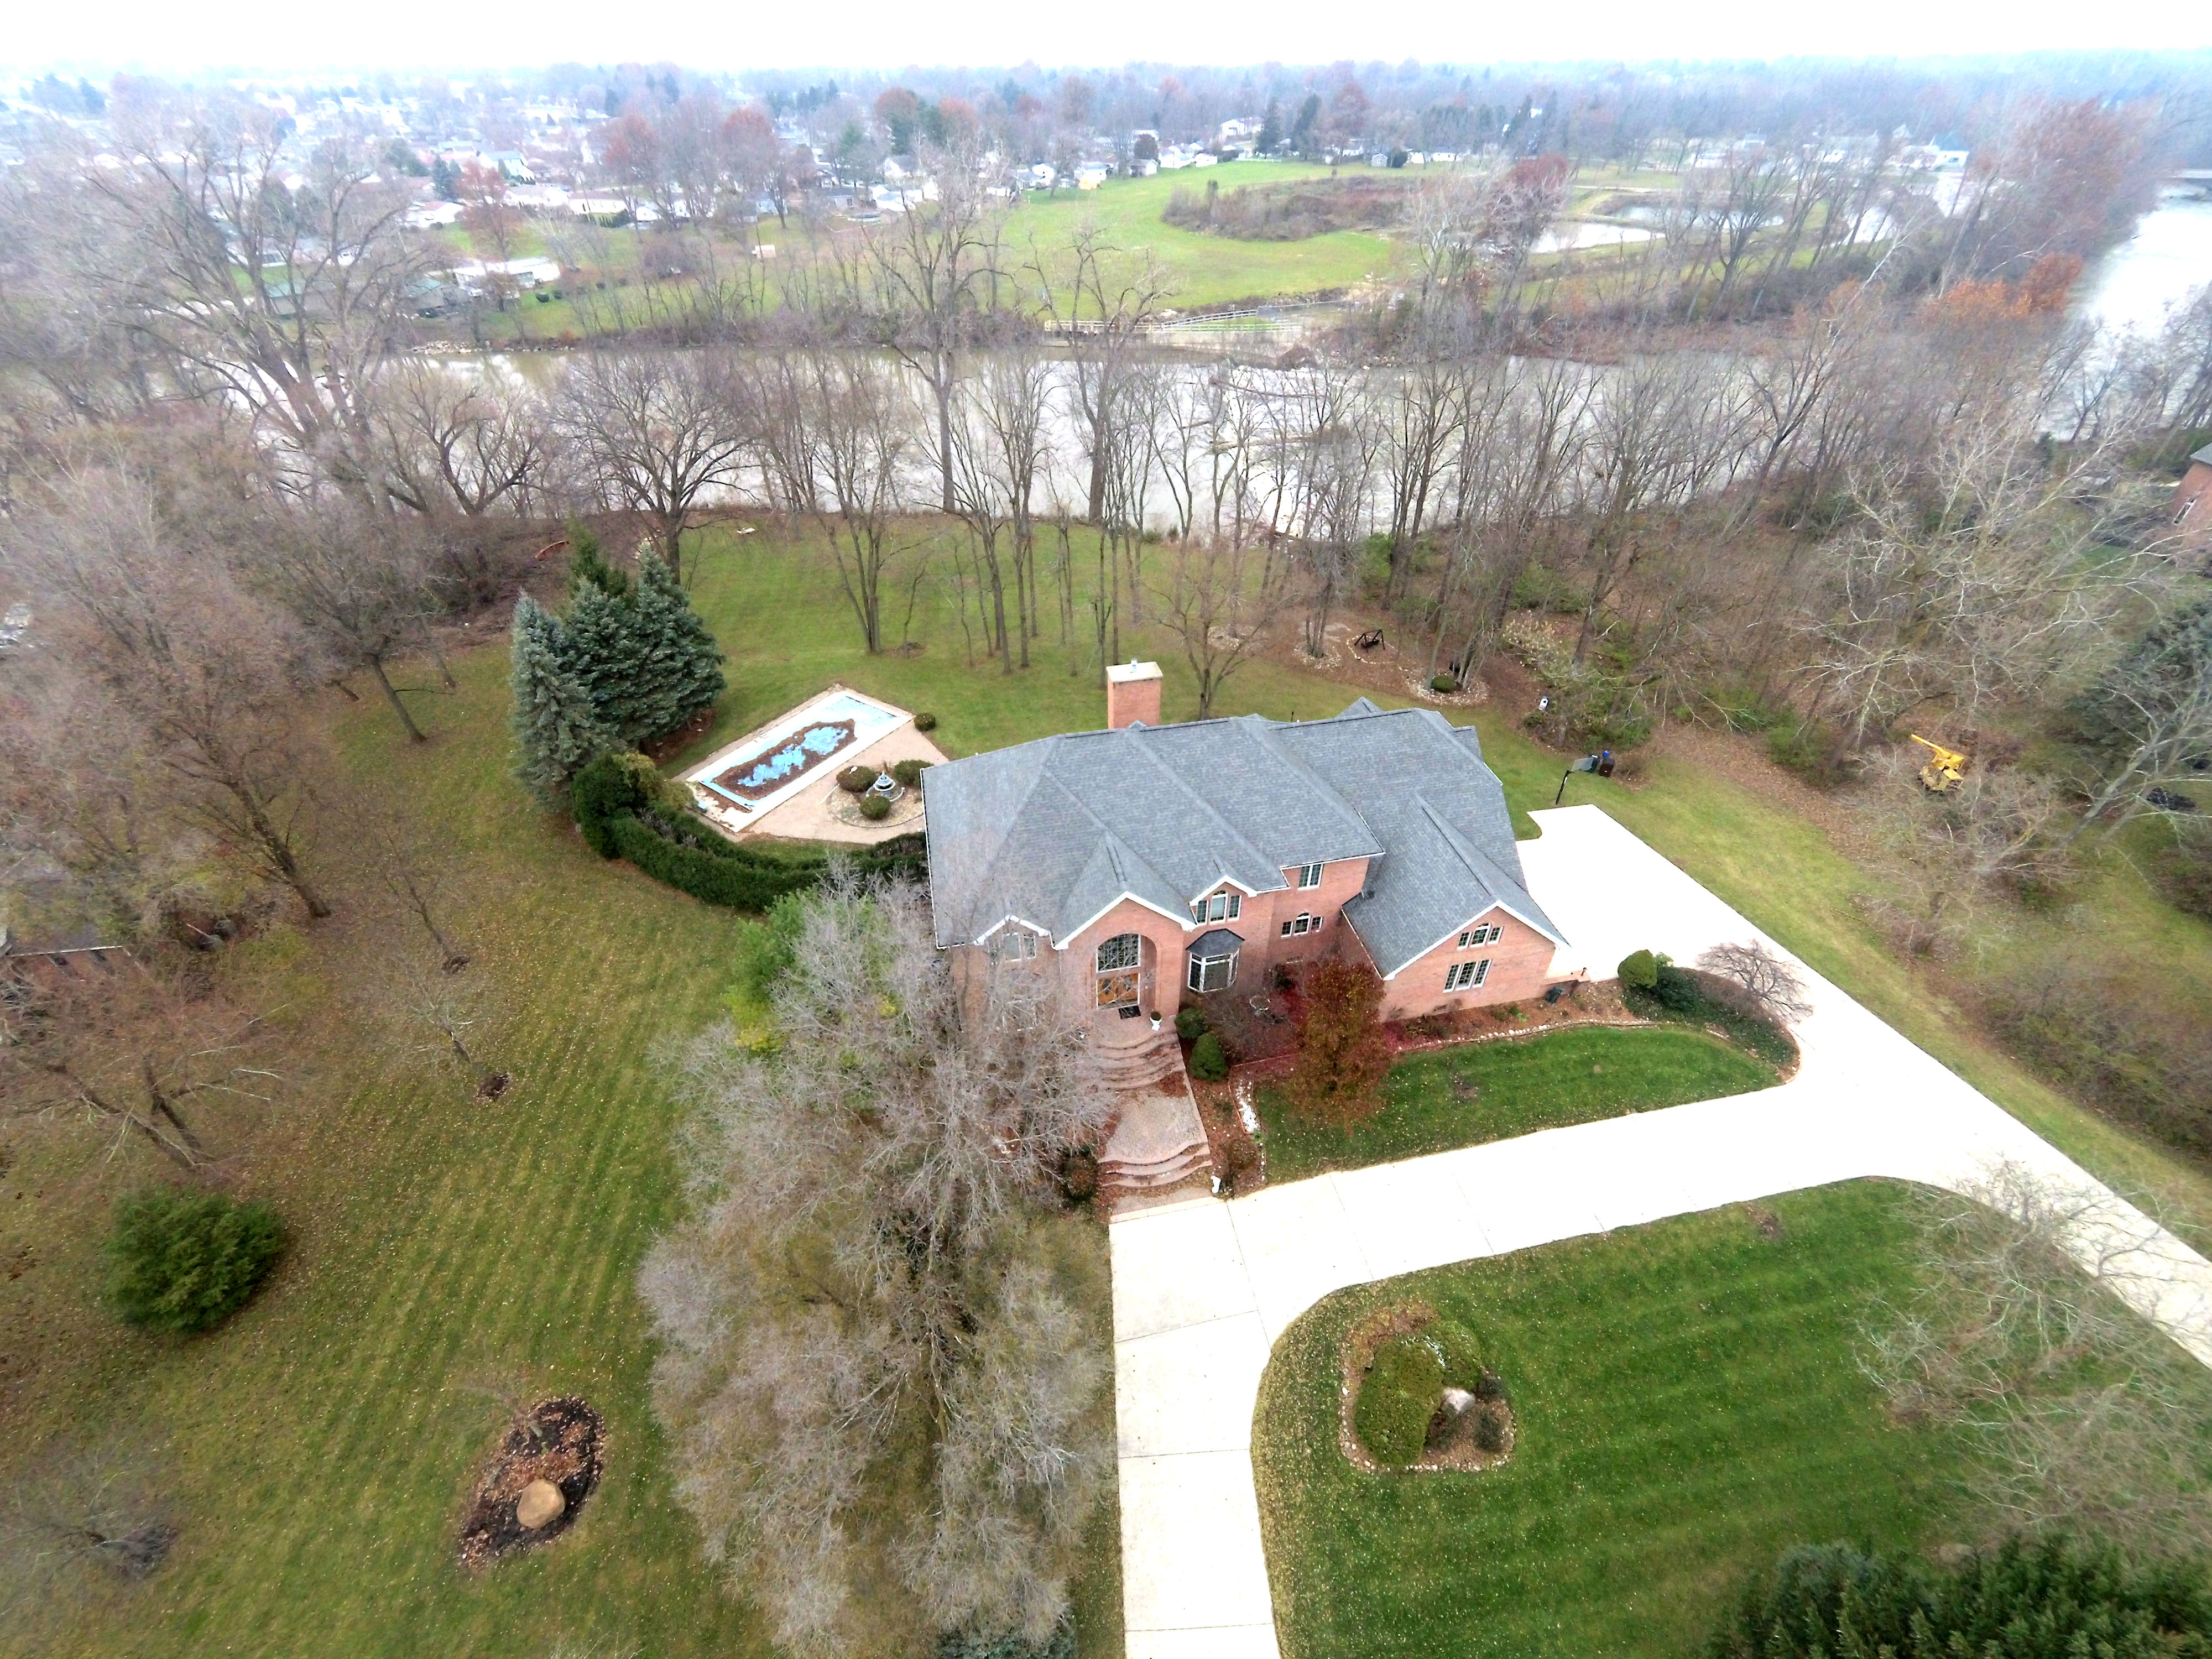 Professional Real Estate Photography – New Heights Aerial